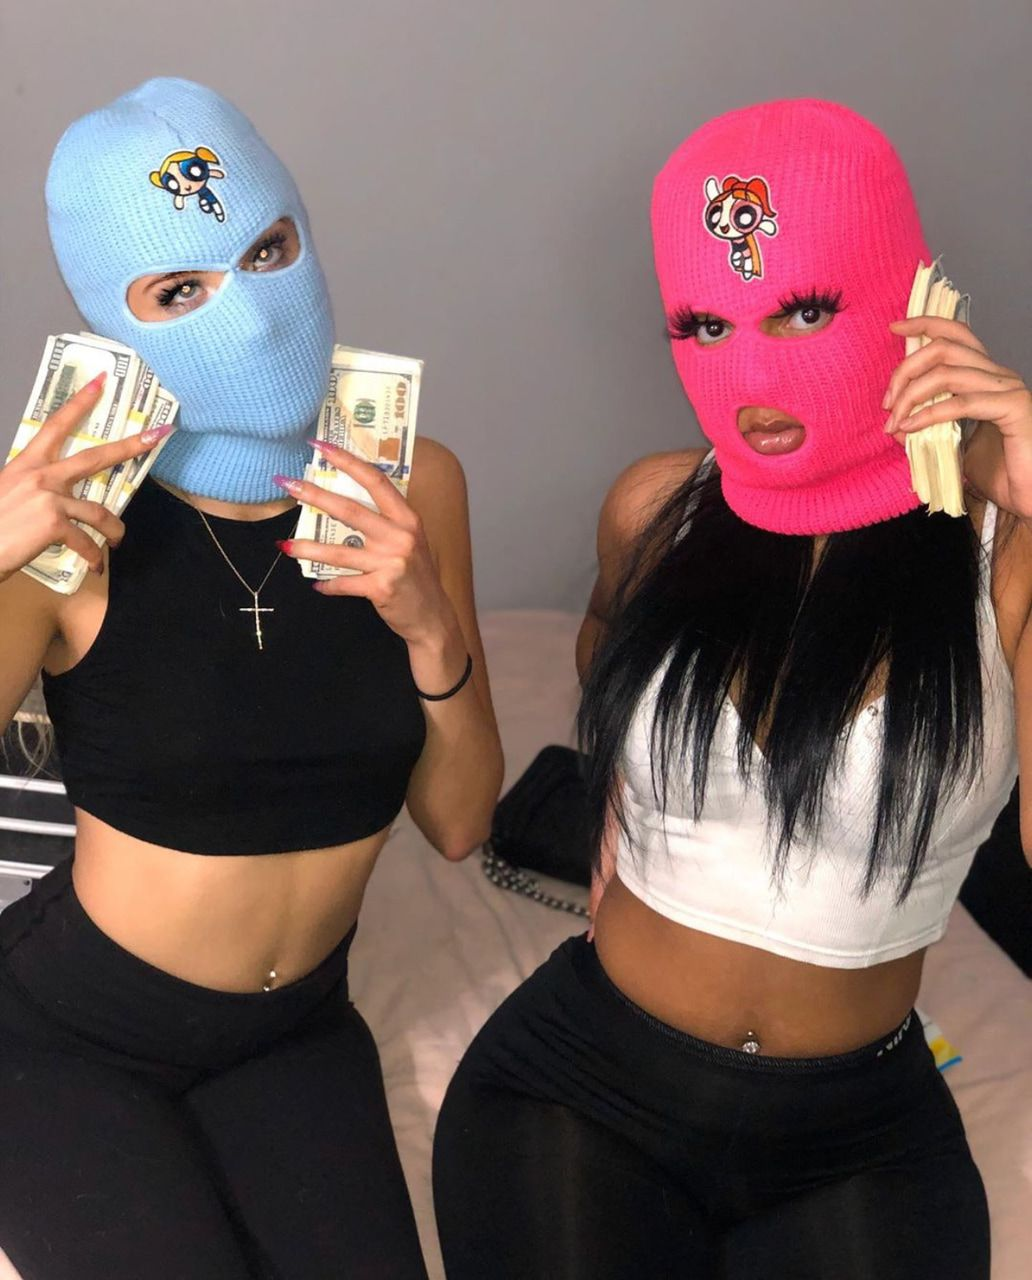 Wallpaper baddie gangsta ski mask aesthetic aesthetic masked girls wallpapers wallpaper cave etsy sellers. Image about girls in wavyy 😈👅💧 by 🦋 on We Heart It   Girl ...